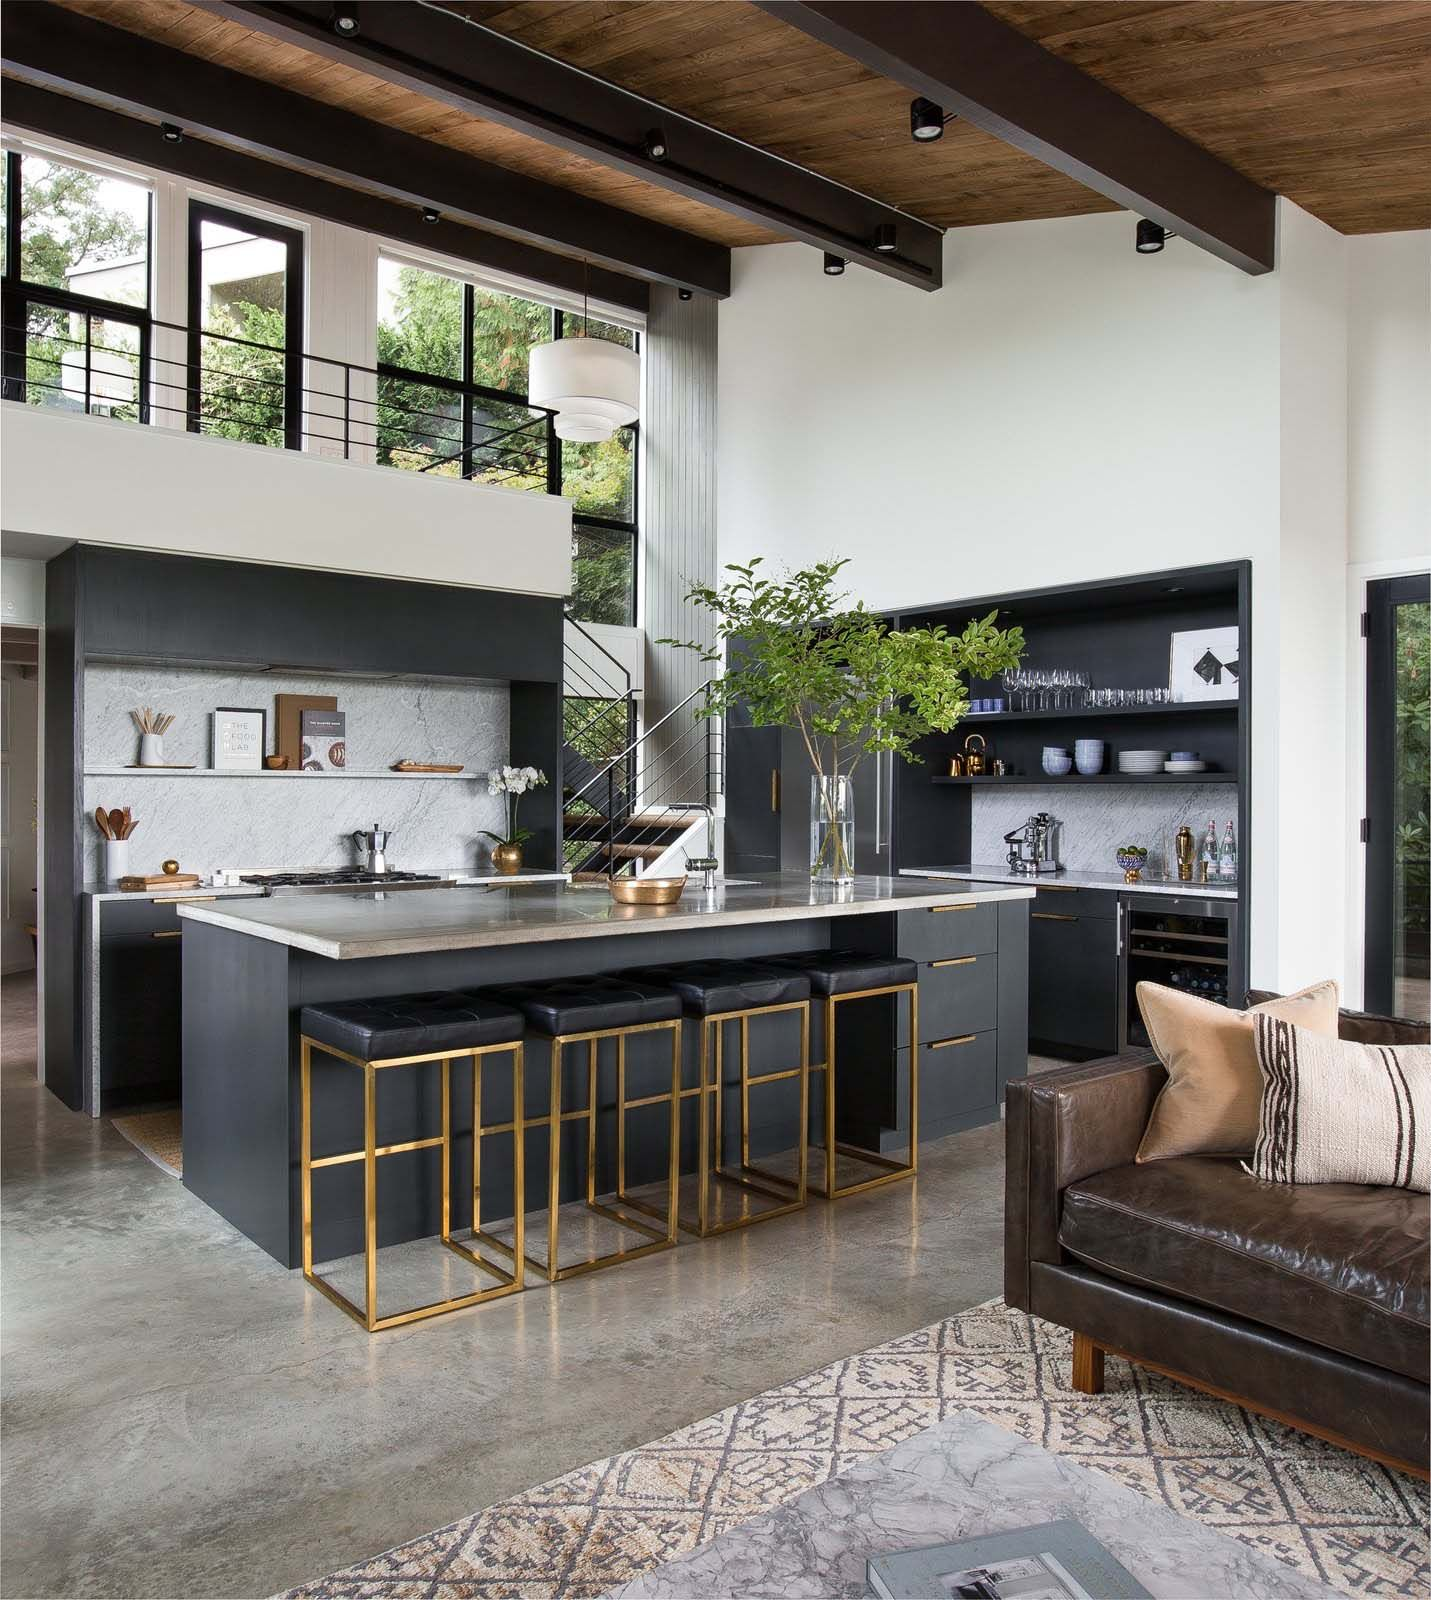 Chic Midcentury Modern Renovation Surrounded By Woods In Seattle Interior Design Kitchen Modern Kitchen Design Kitchen Interior